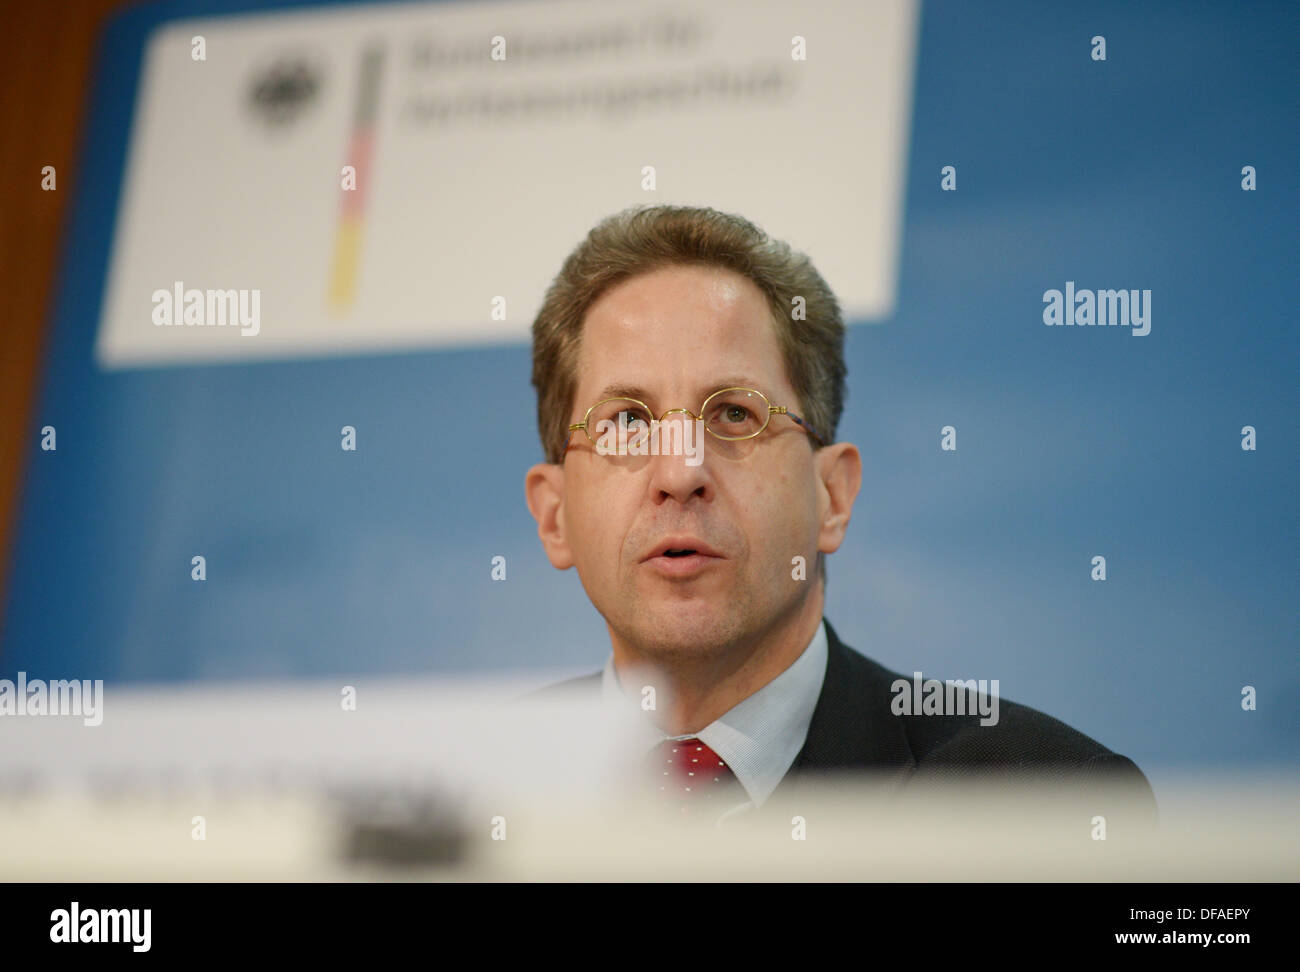 The president of the Federal Office for the Protection of the Constitution Hans-Georg Maaßen speaks at the Federal Press Conference about the history of the Federal Office for the Protection of the Constitution and it's connection to the NS past in Berlin, Germany, 01 October 2013. Photo: RAINER JENSEN - Stock Image